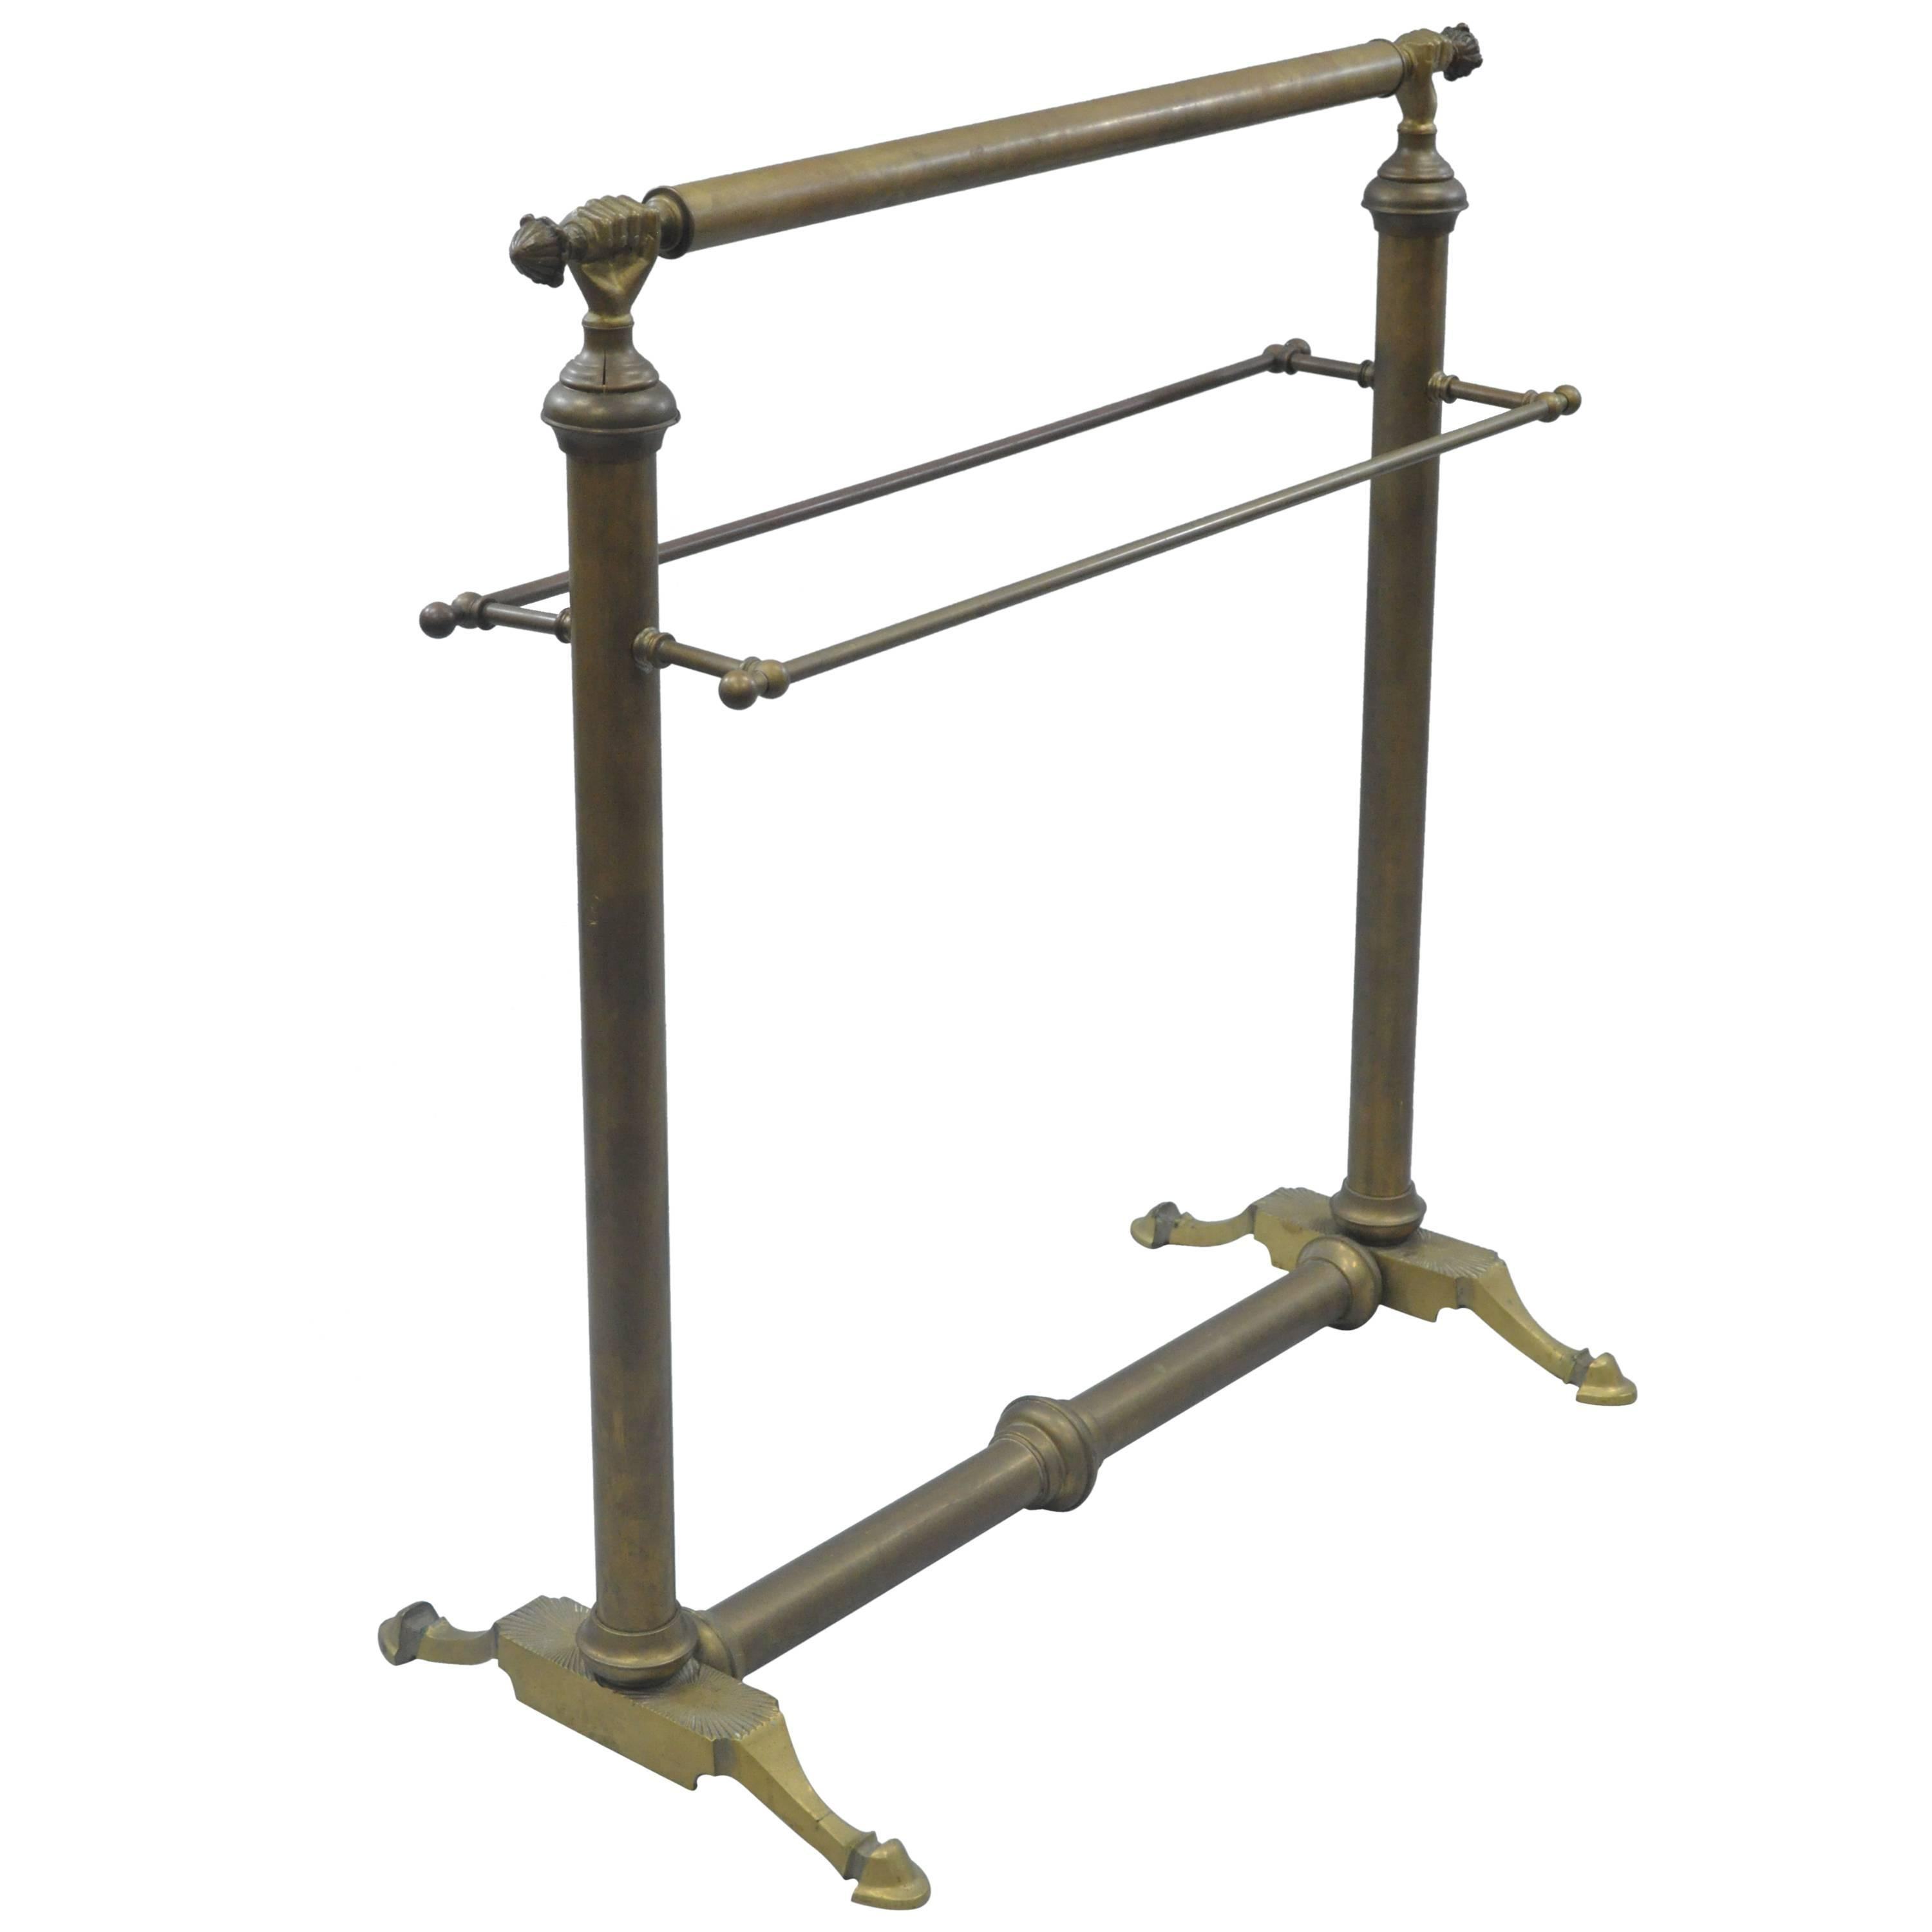 Clasped Hands Victorian Andre Arbus Style Brass Quilt Towel Rack Stand  Holder